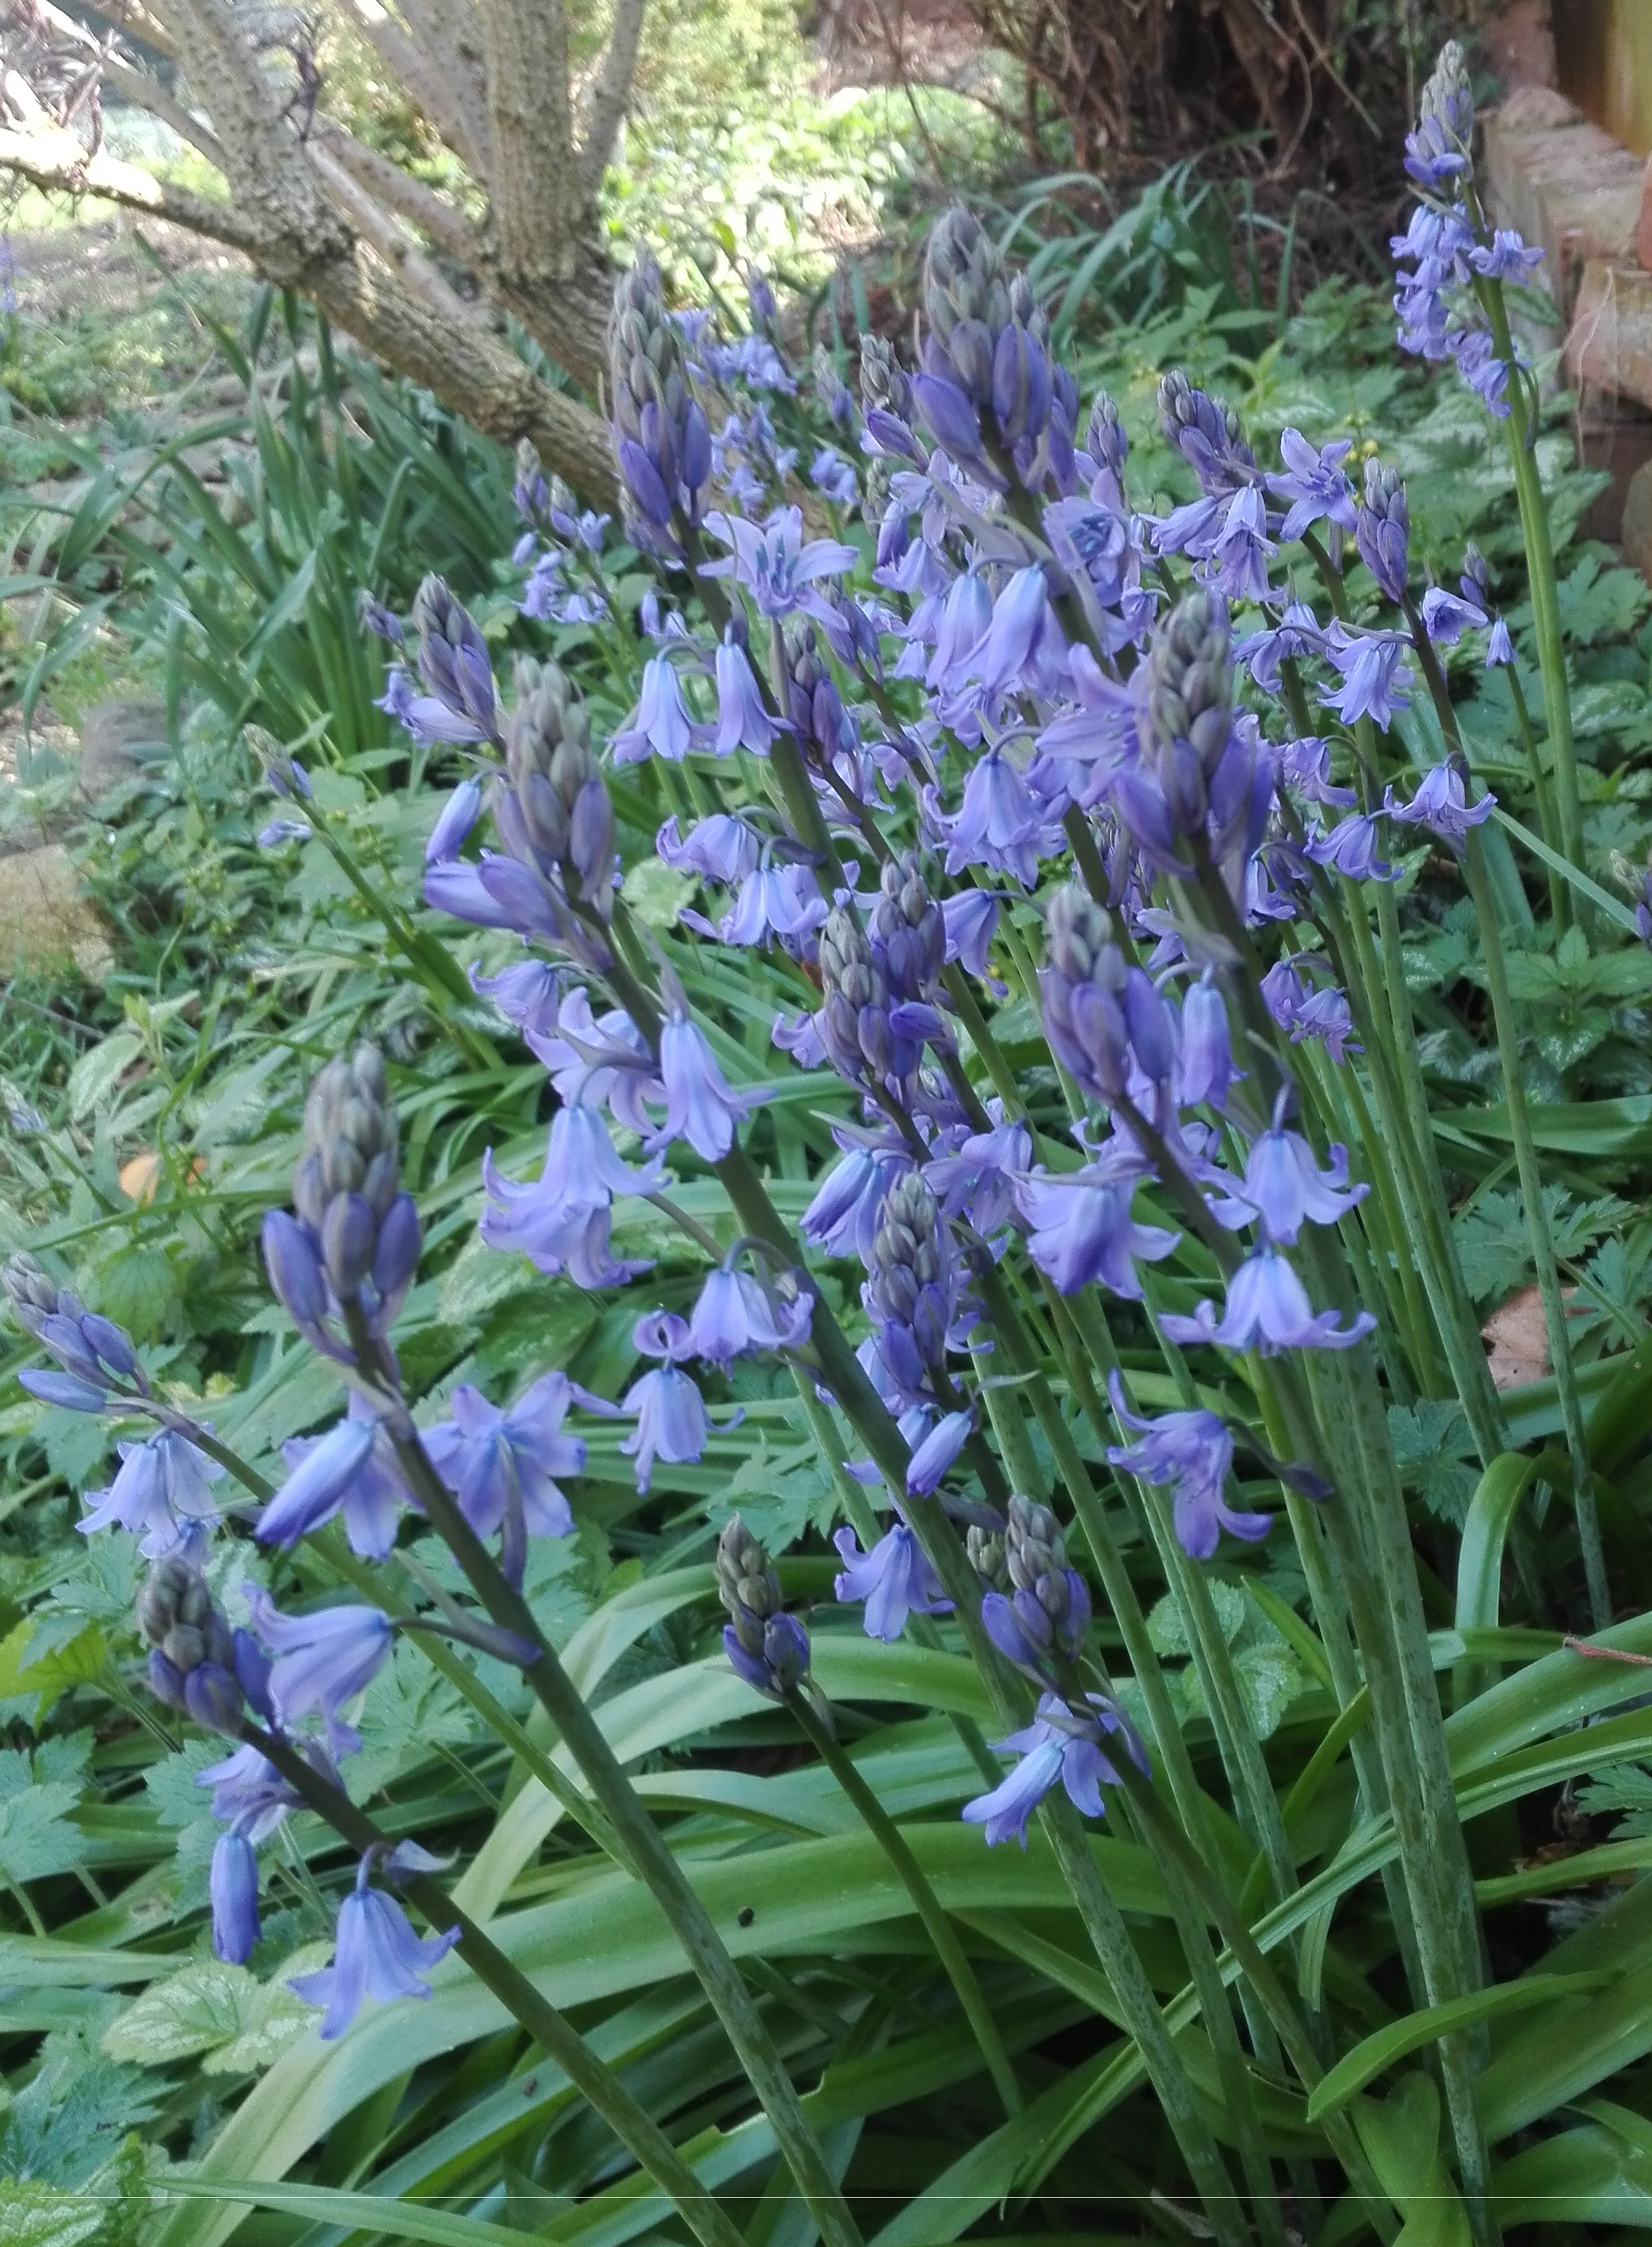 #16 Spanish Bluebell (Hyacinthoides hispanica)